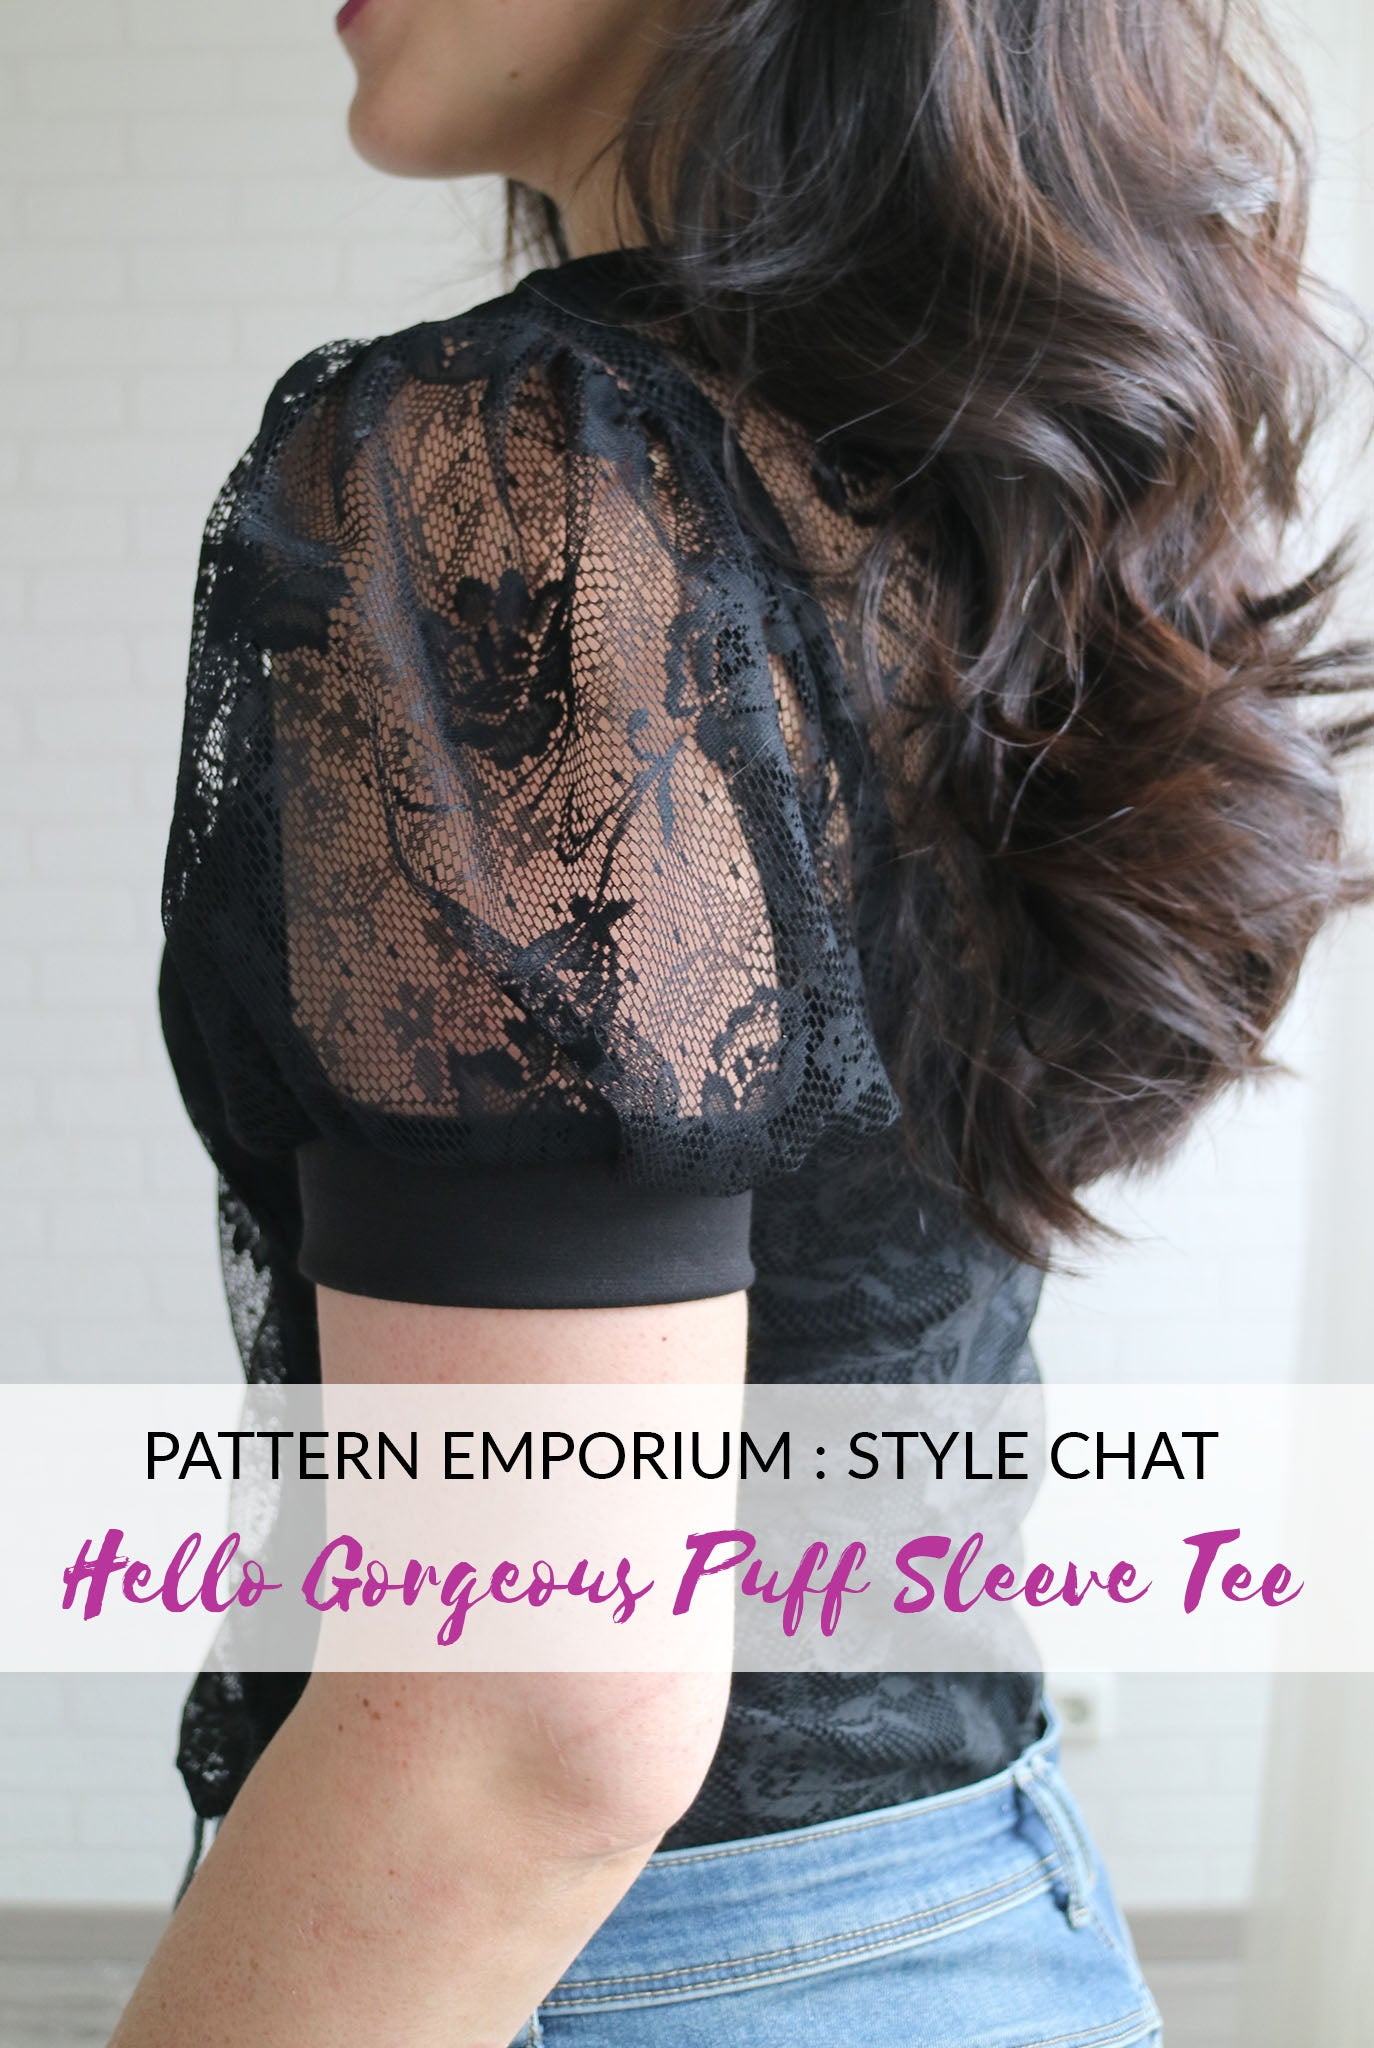 Style Chat : Well Hello Gorgeous!